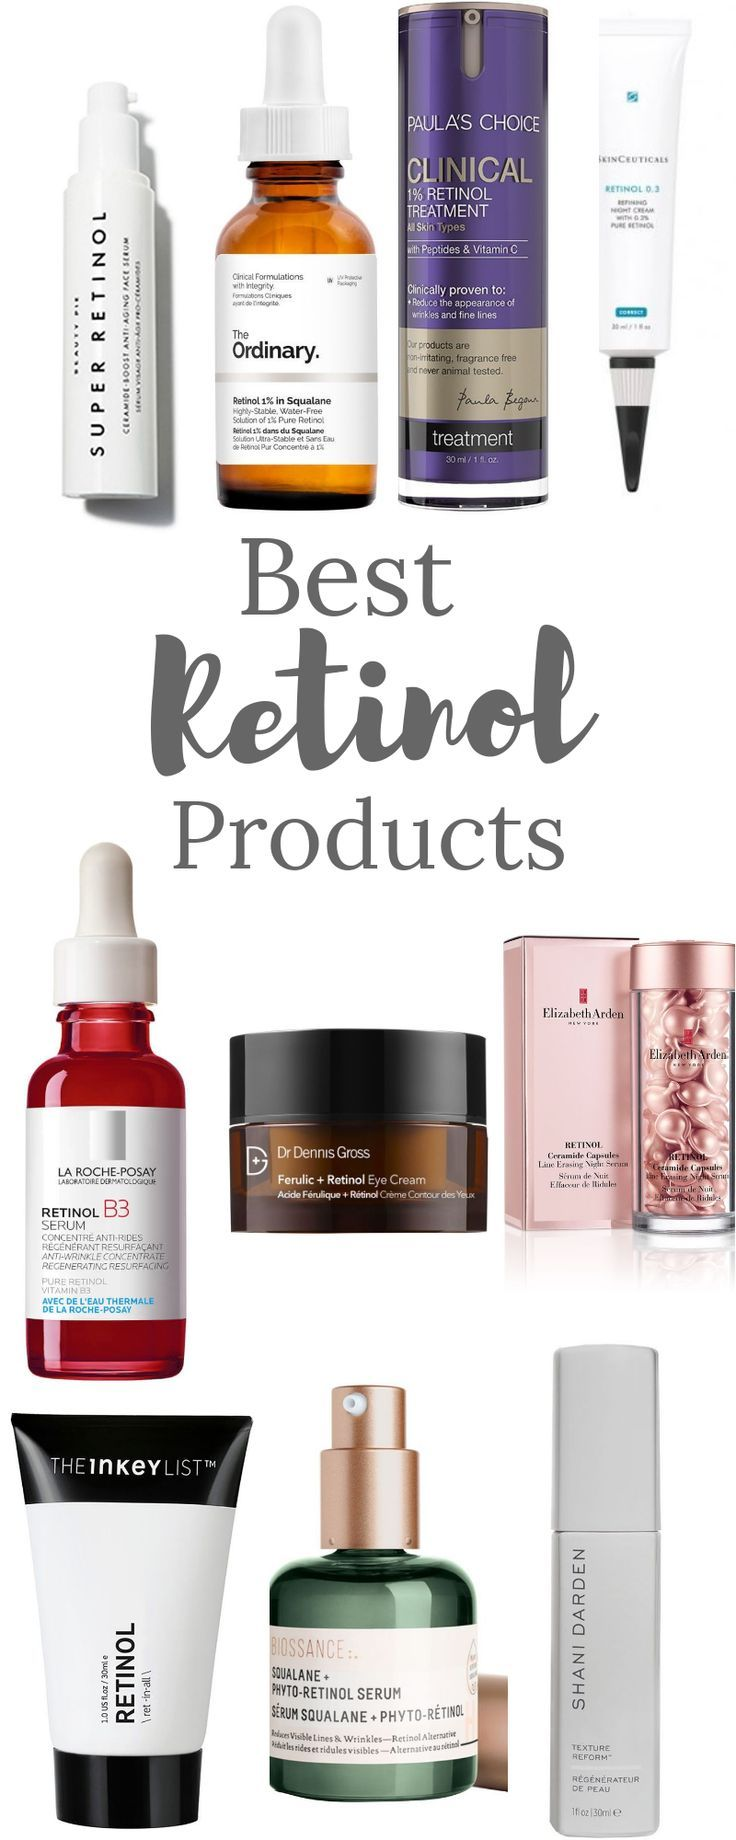 Best Retinol Skincare Products In 2020 Anti Aging Skin Products Retinol Skin Care